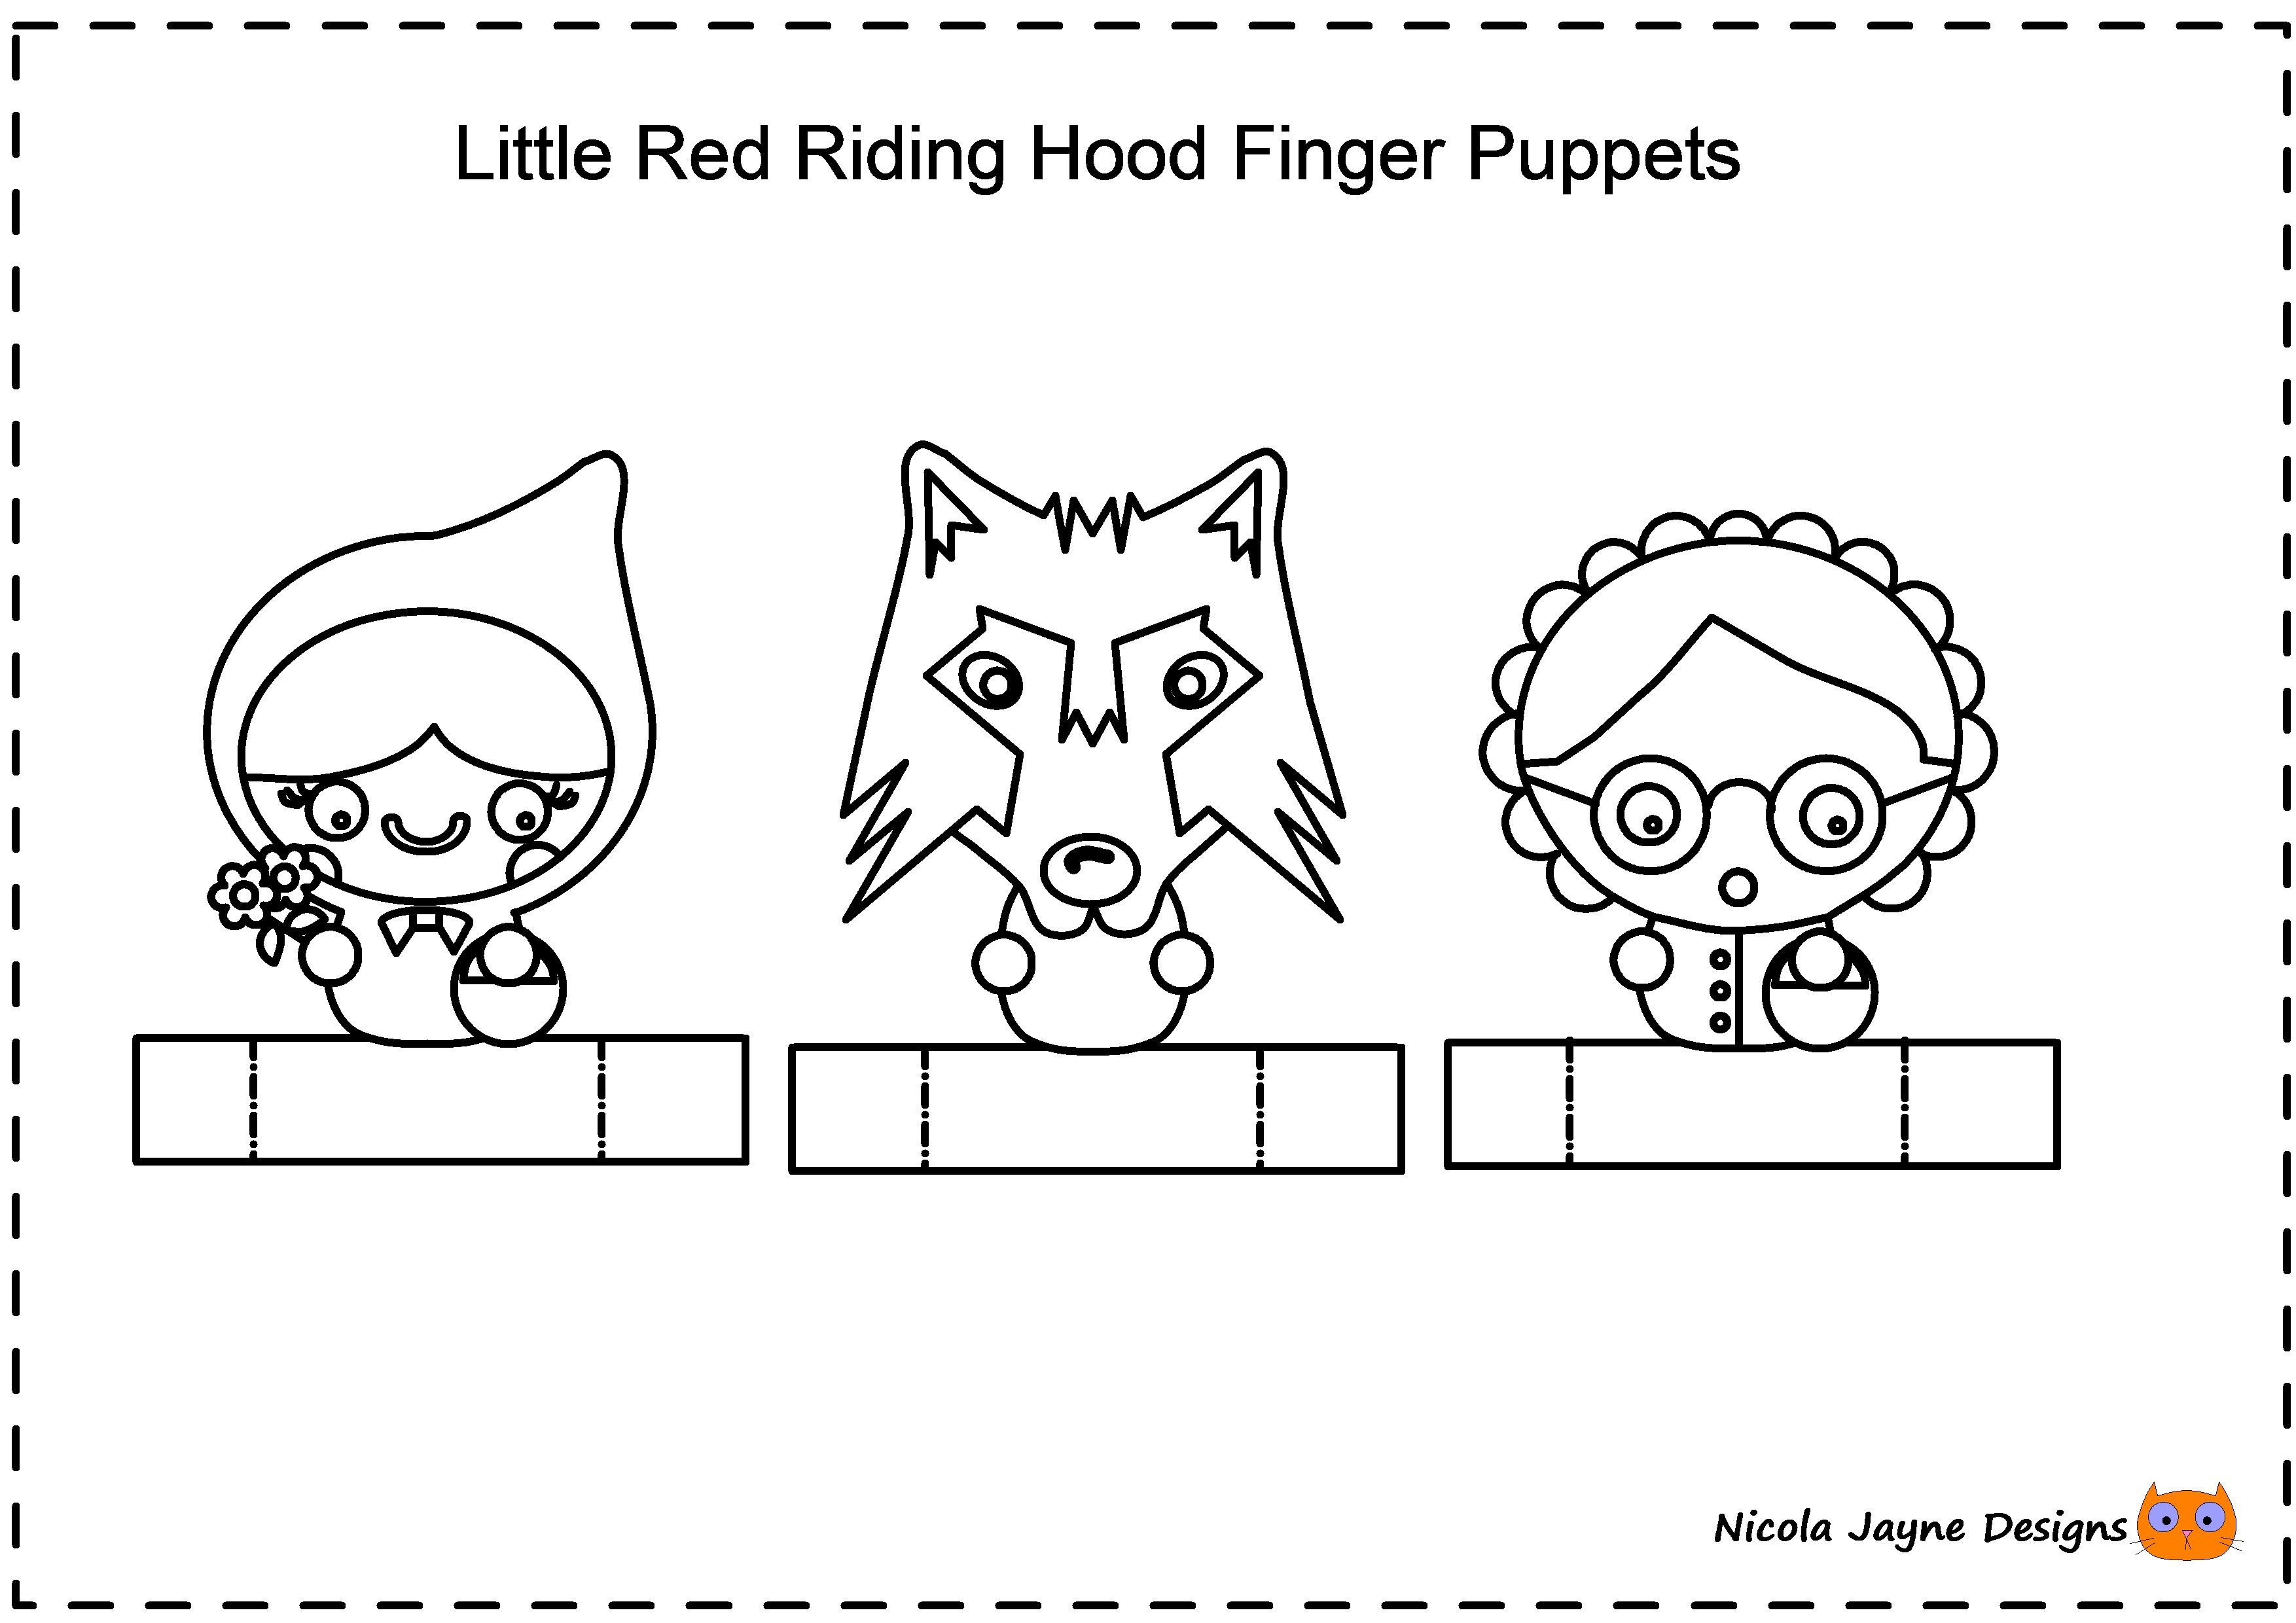 Little Red Riding Hood Finger Puppets Colour Cut Out